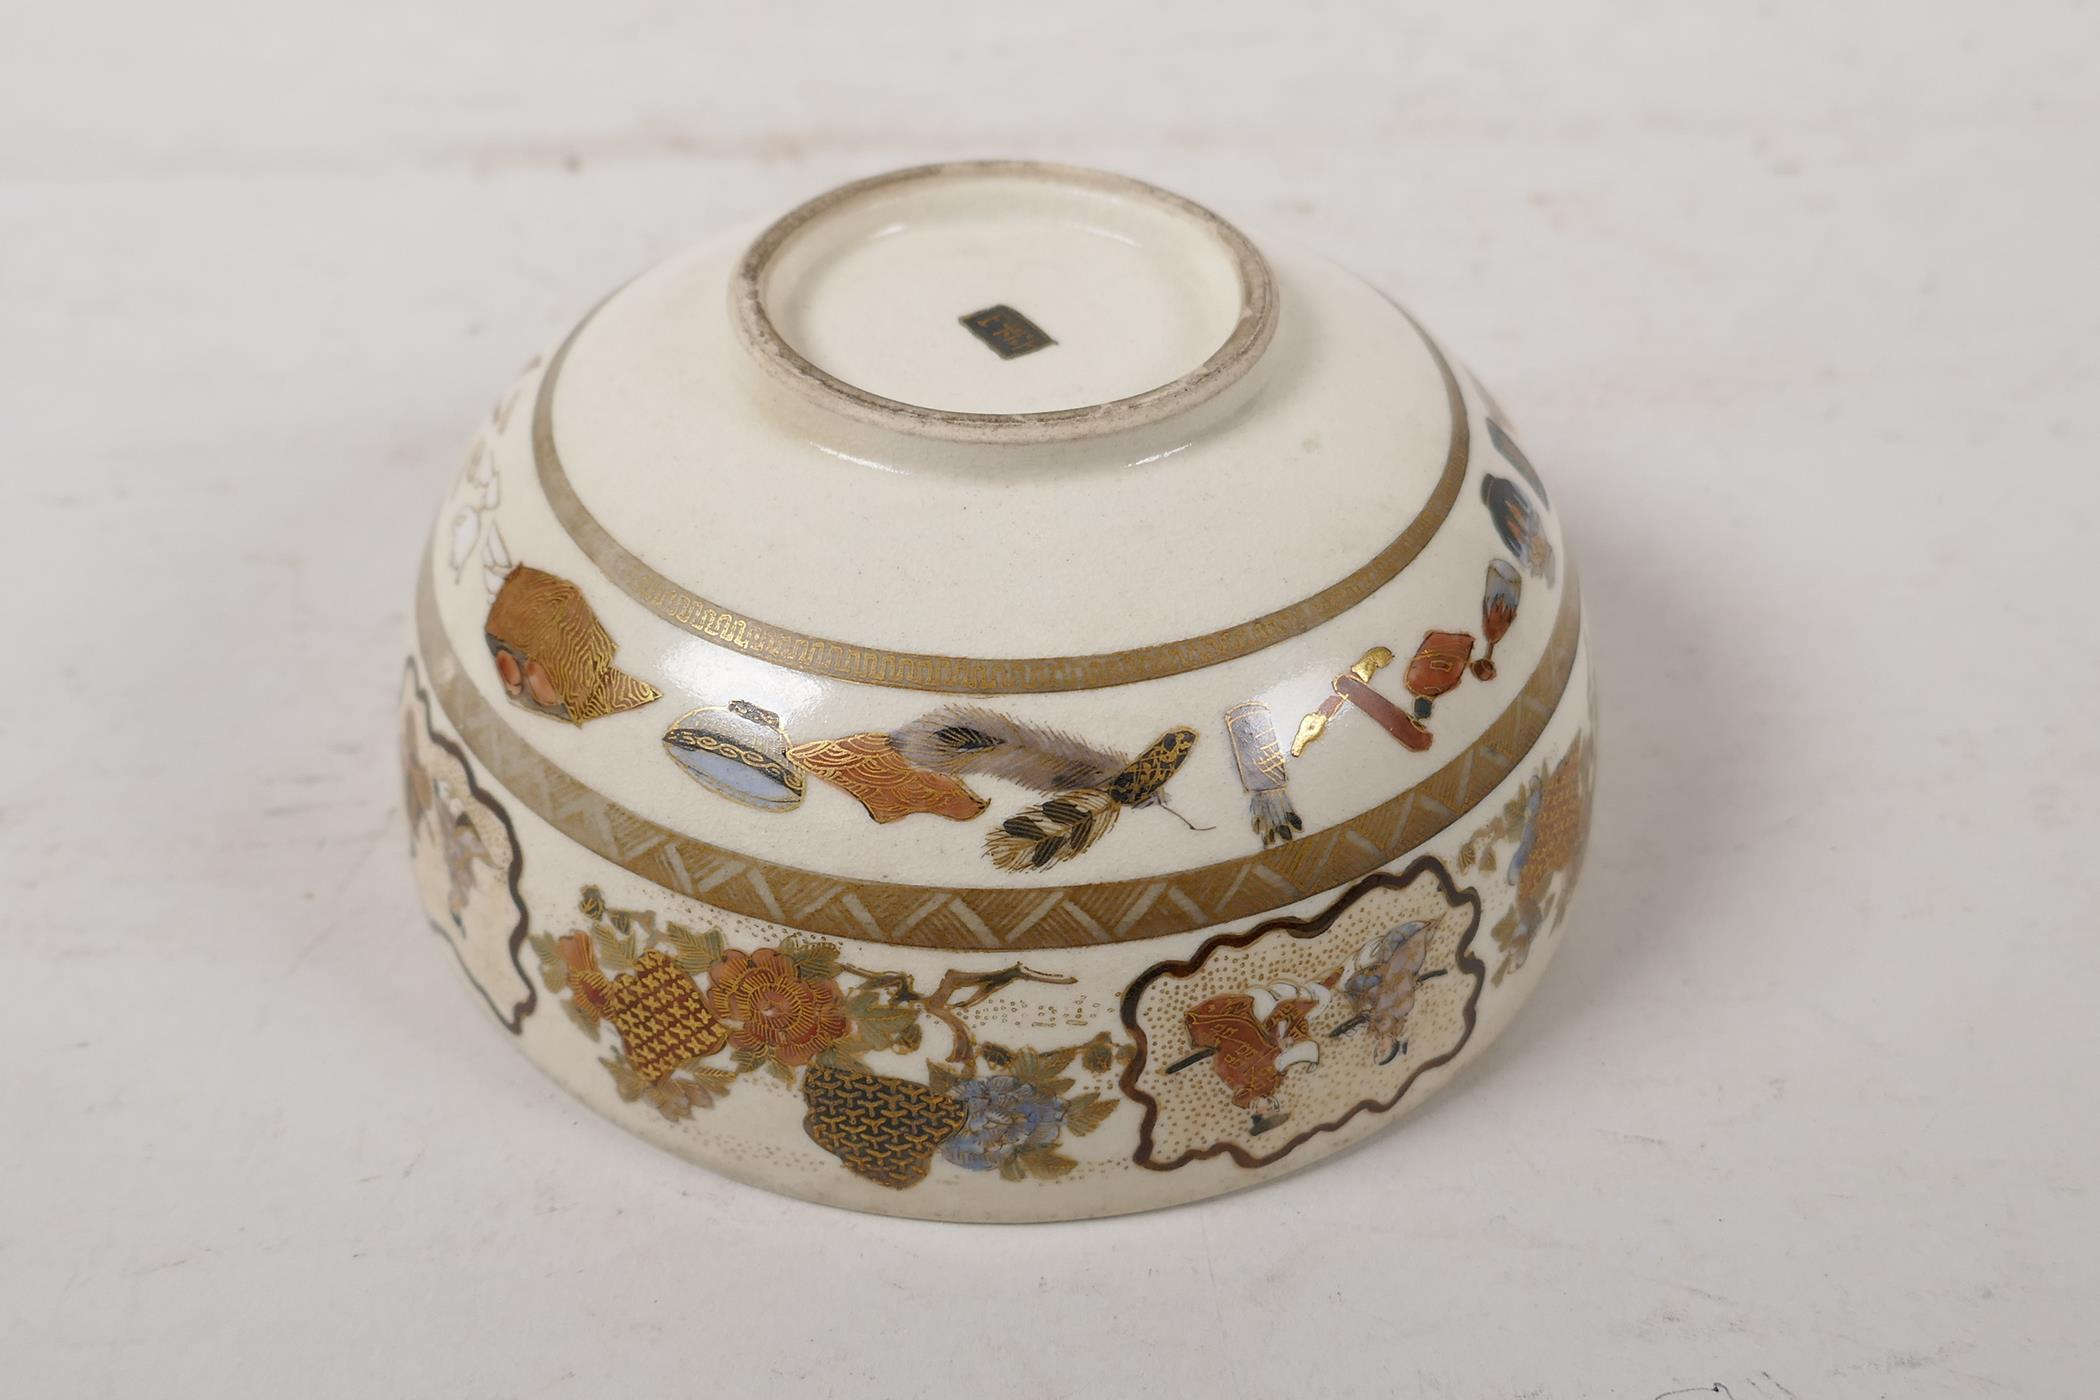 A Japanese meiji period satsuma bowl, decorated with children to the interior, the exterior with - Image 5 of 8